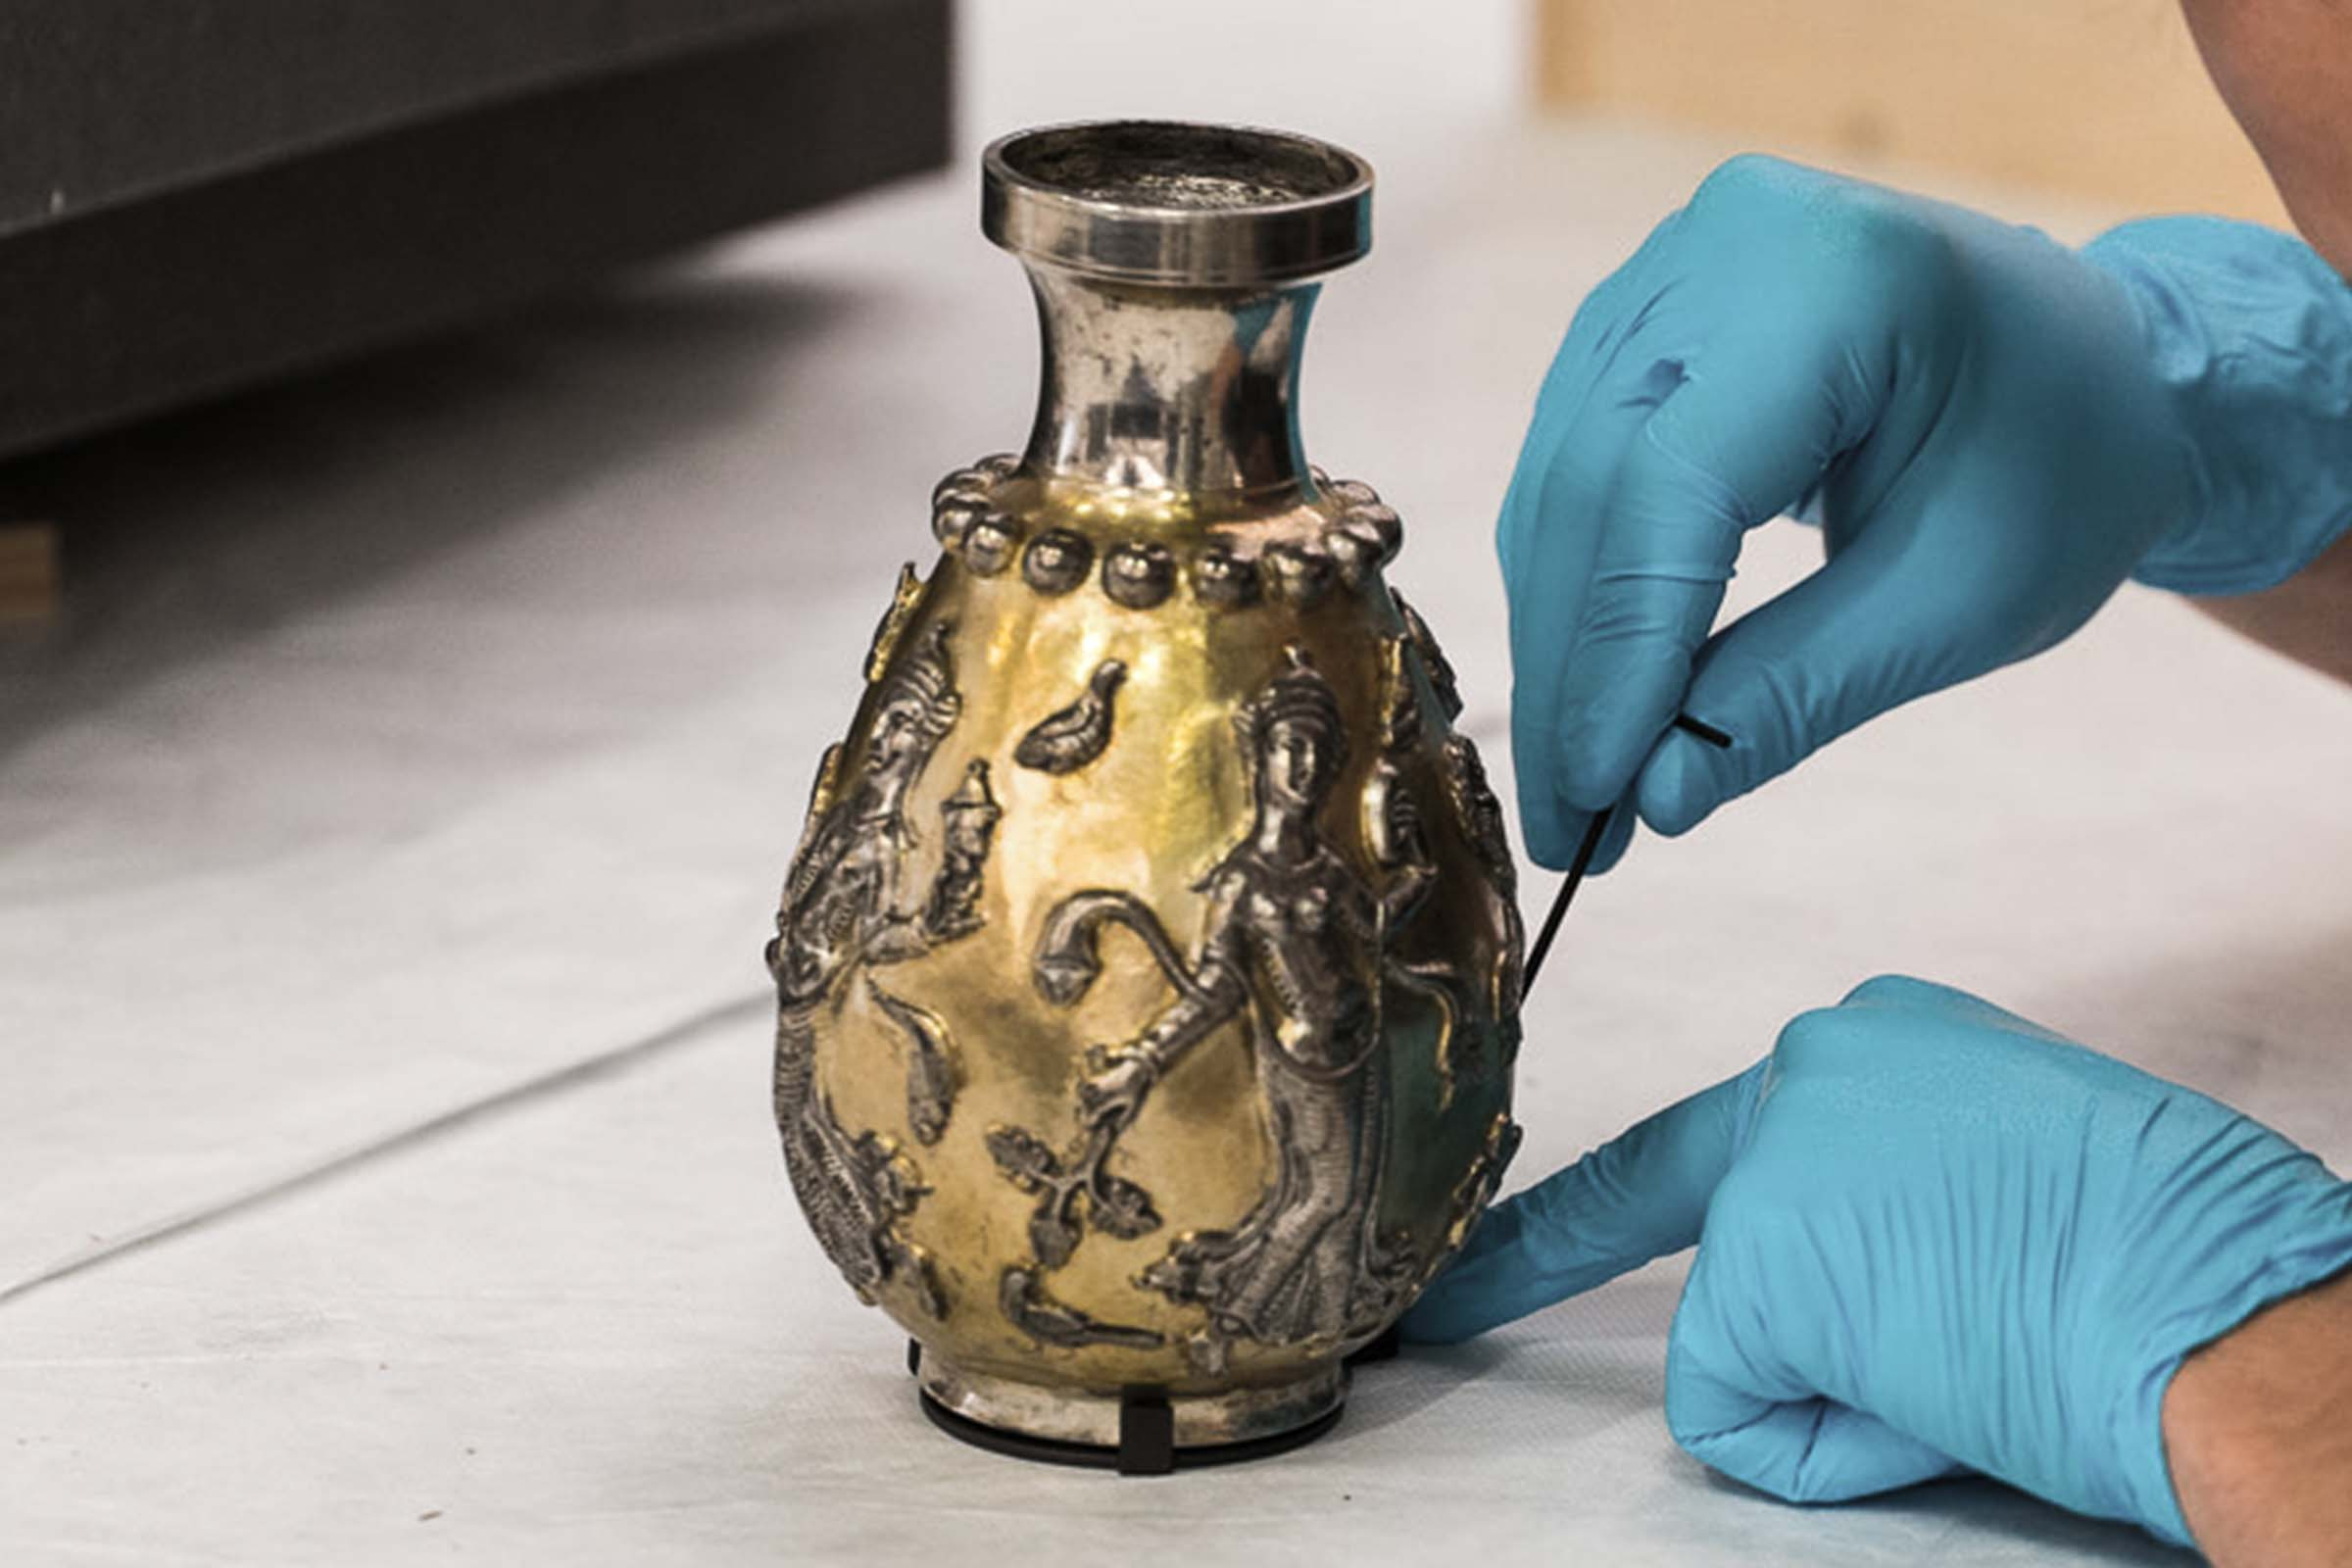 Cleaning of a Vase decorated